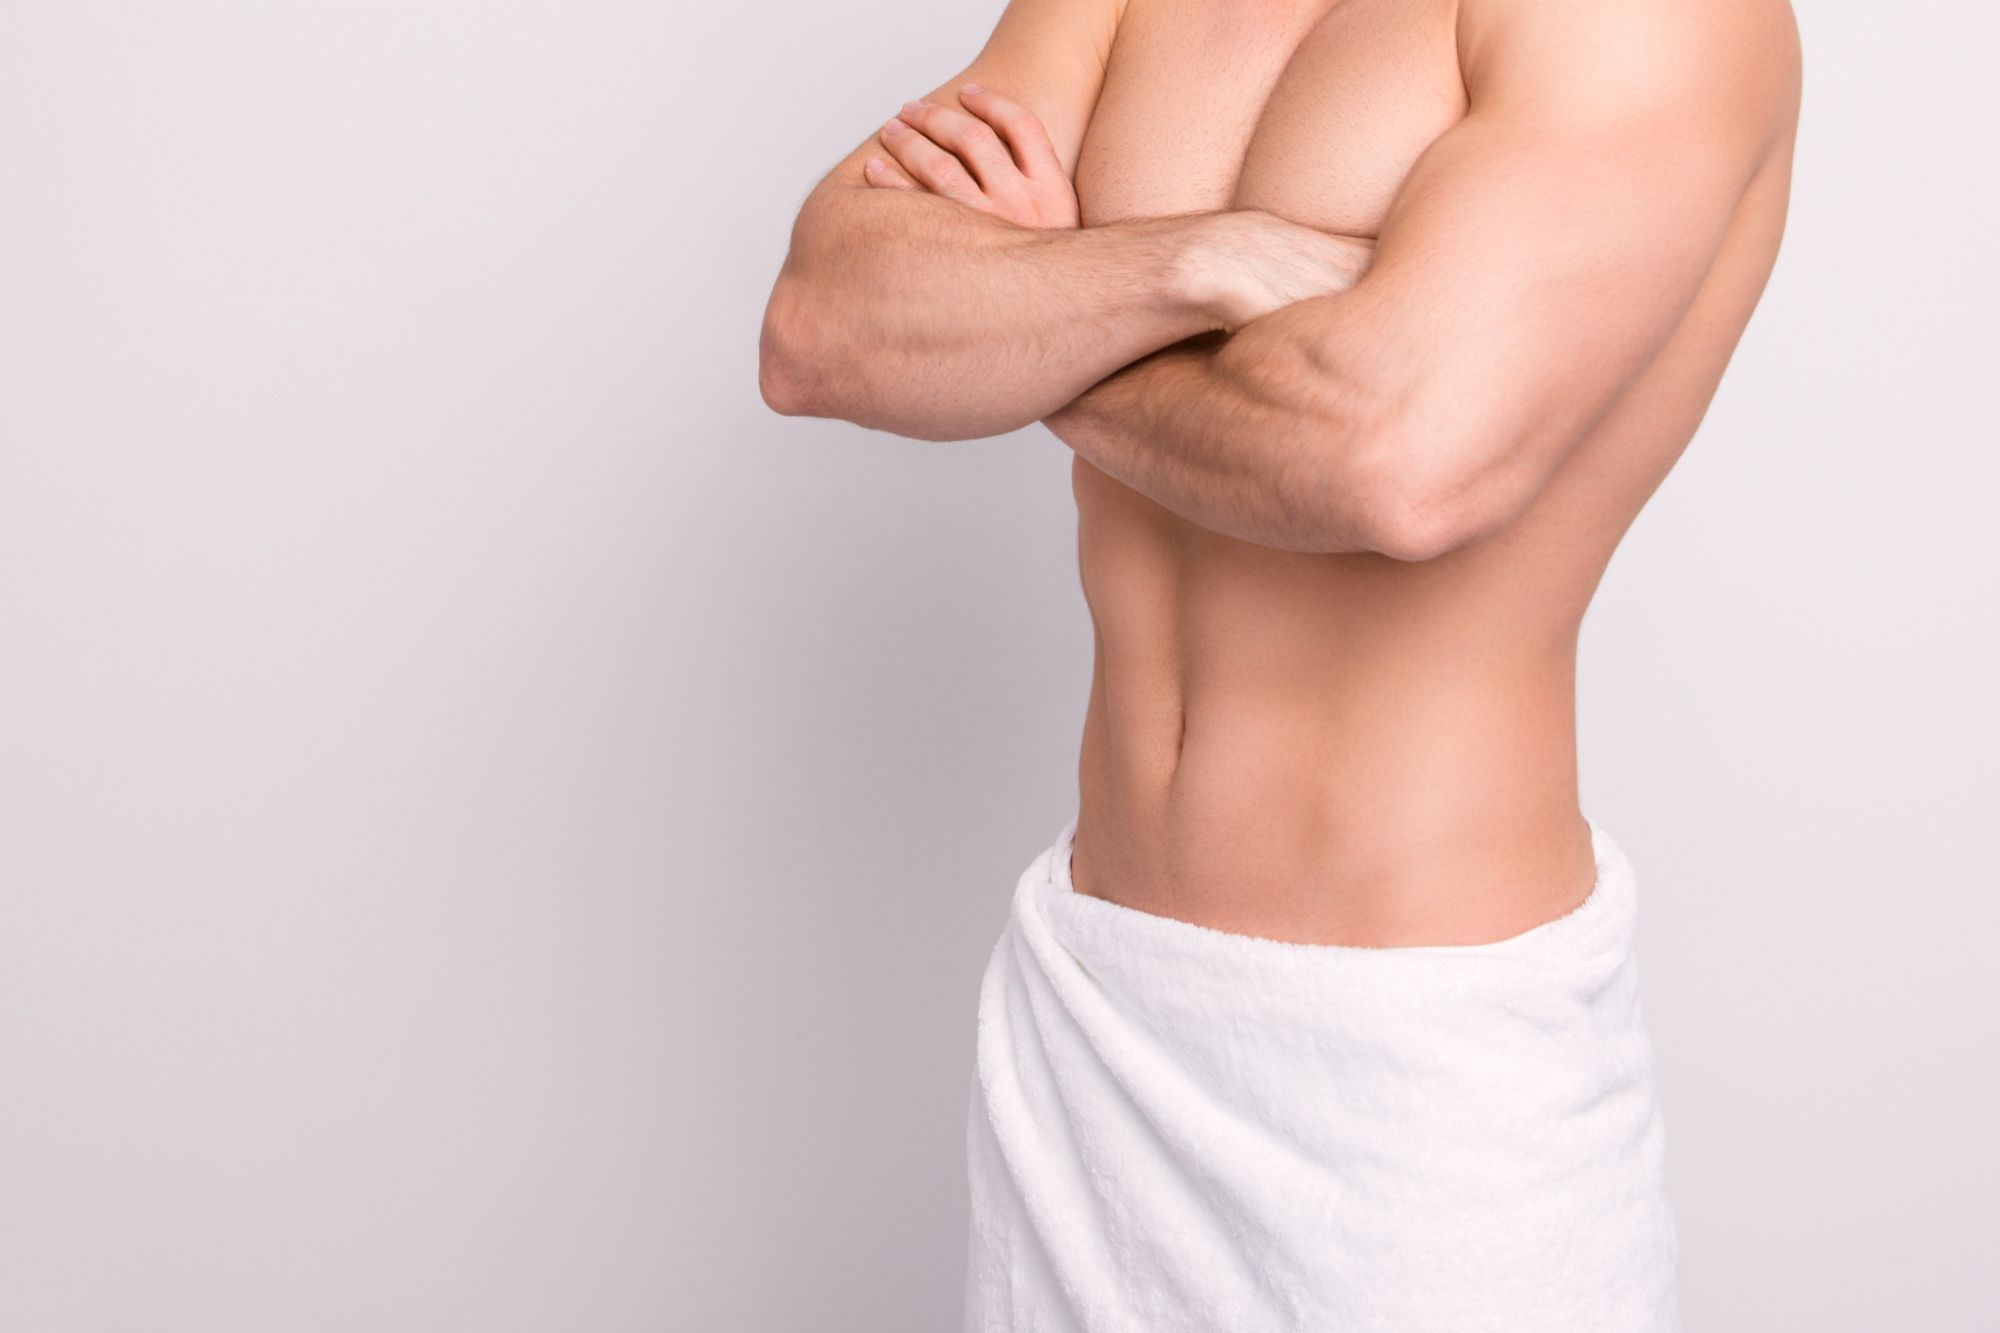 Penoplastie Tunisie Chirurgie Intime Pour Homme